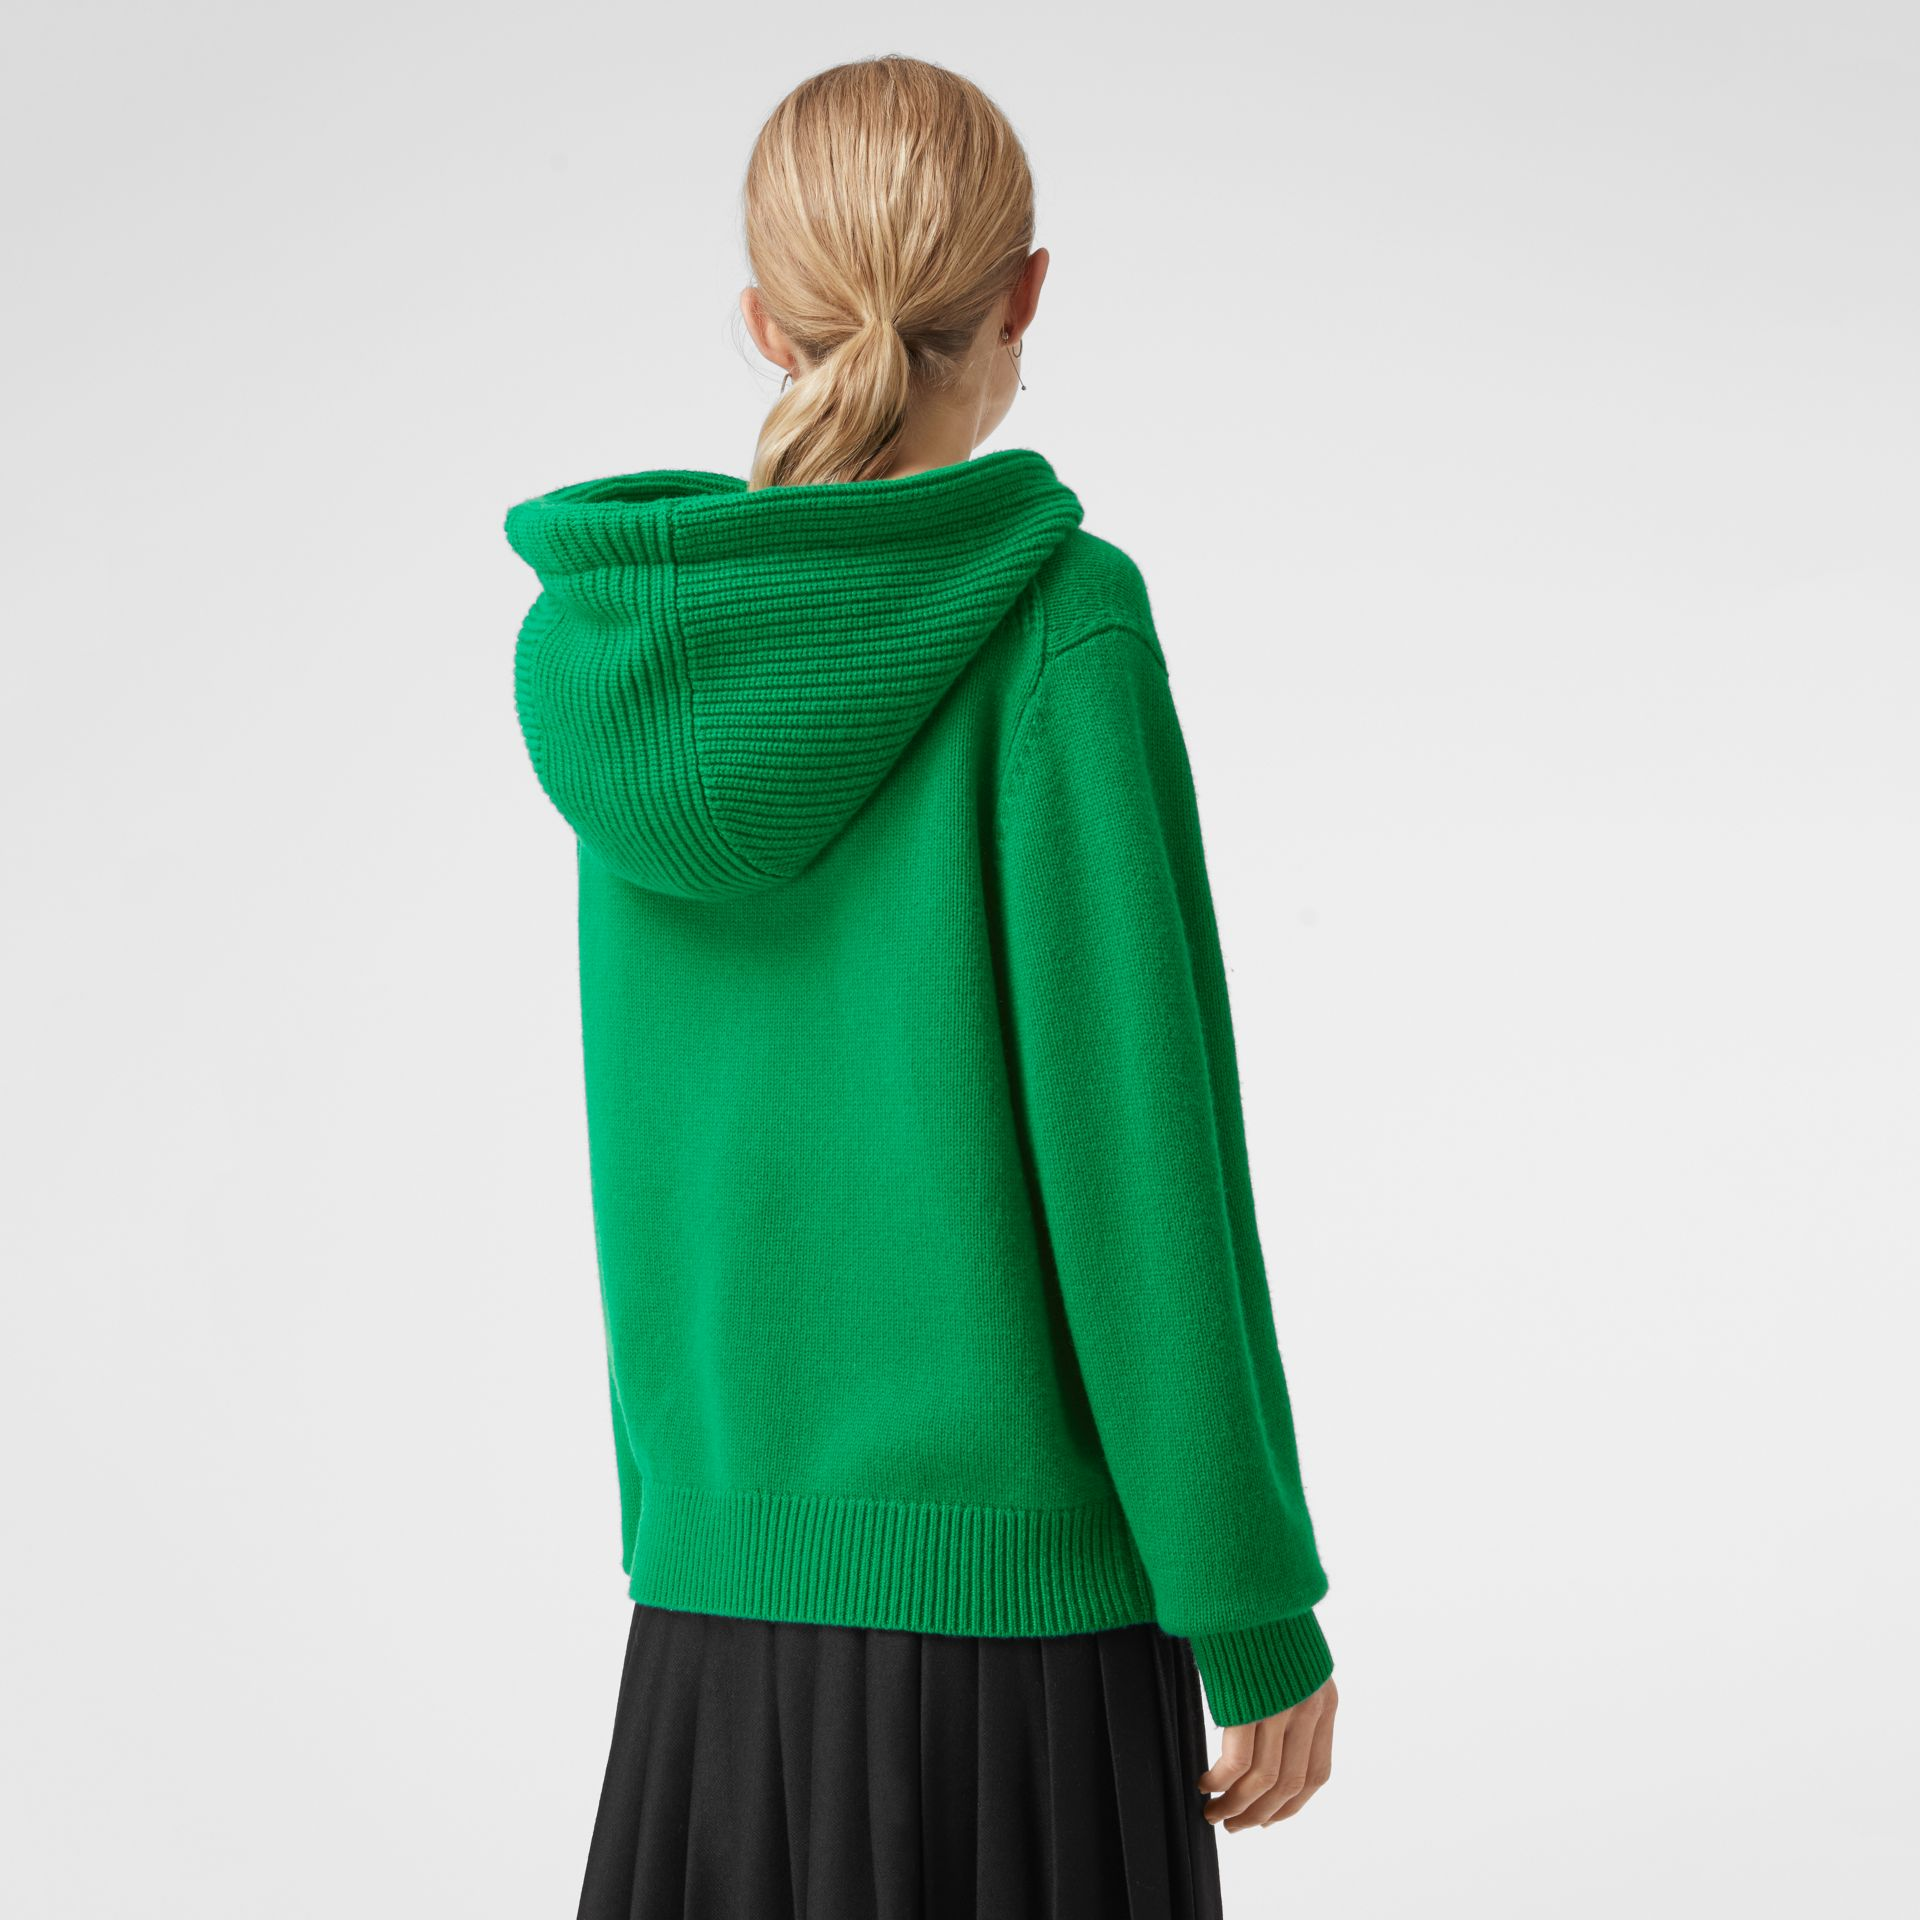 Embroidered Crest Cashmere Hooded Top in Vibrant Green - Women | Burberry Australia - gallery image 2